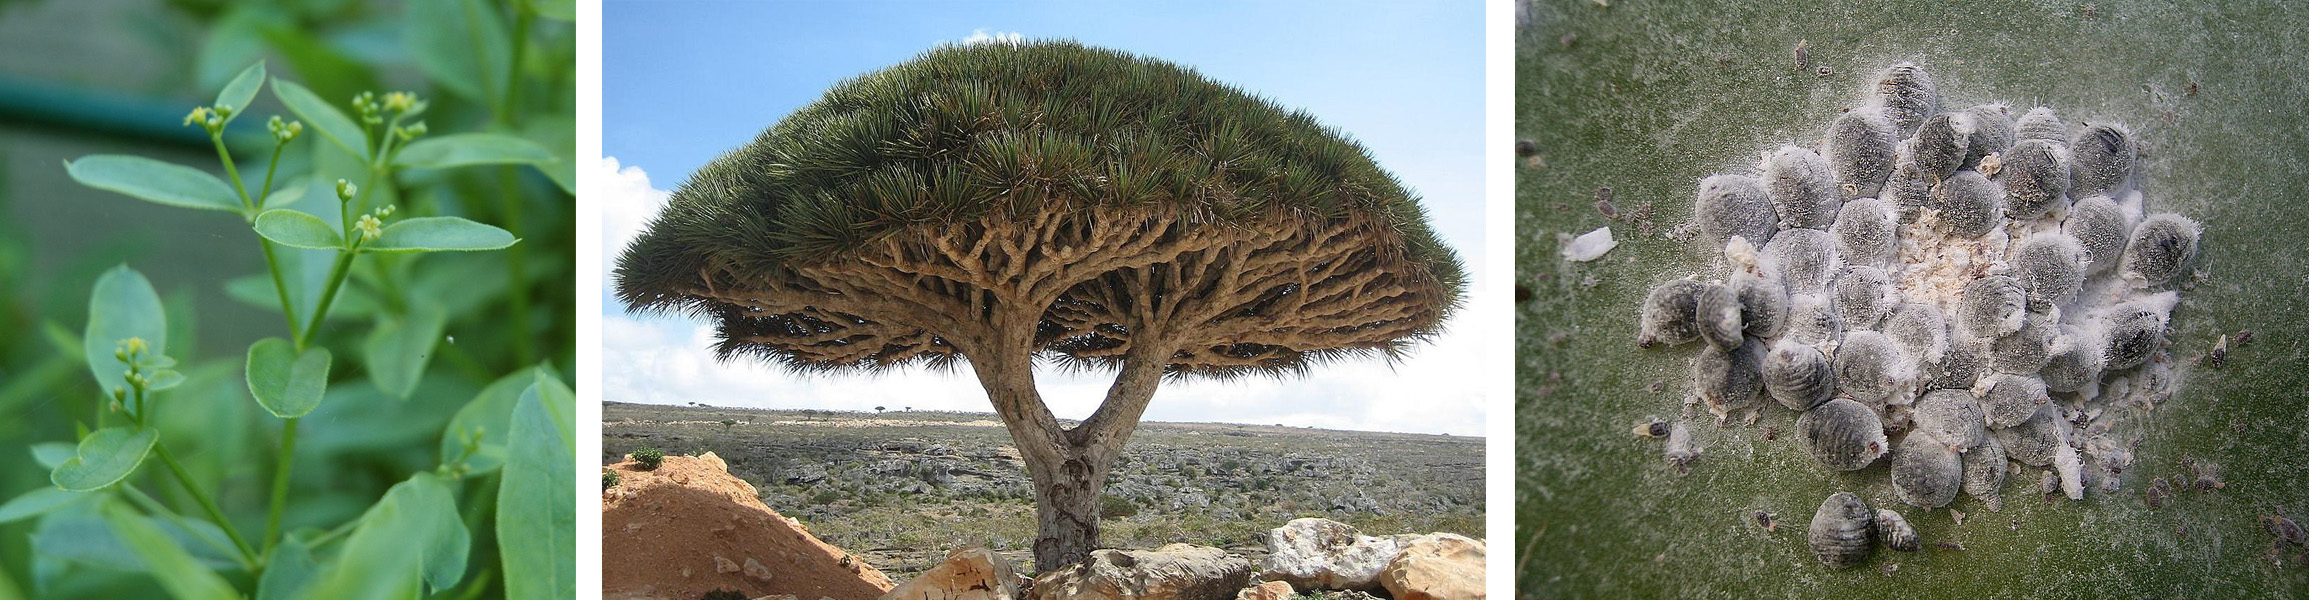 sources of red pigments: a madder plant, dragon tree, and female scale insects